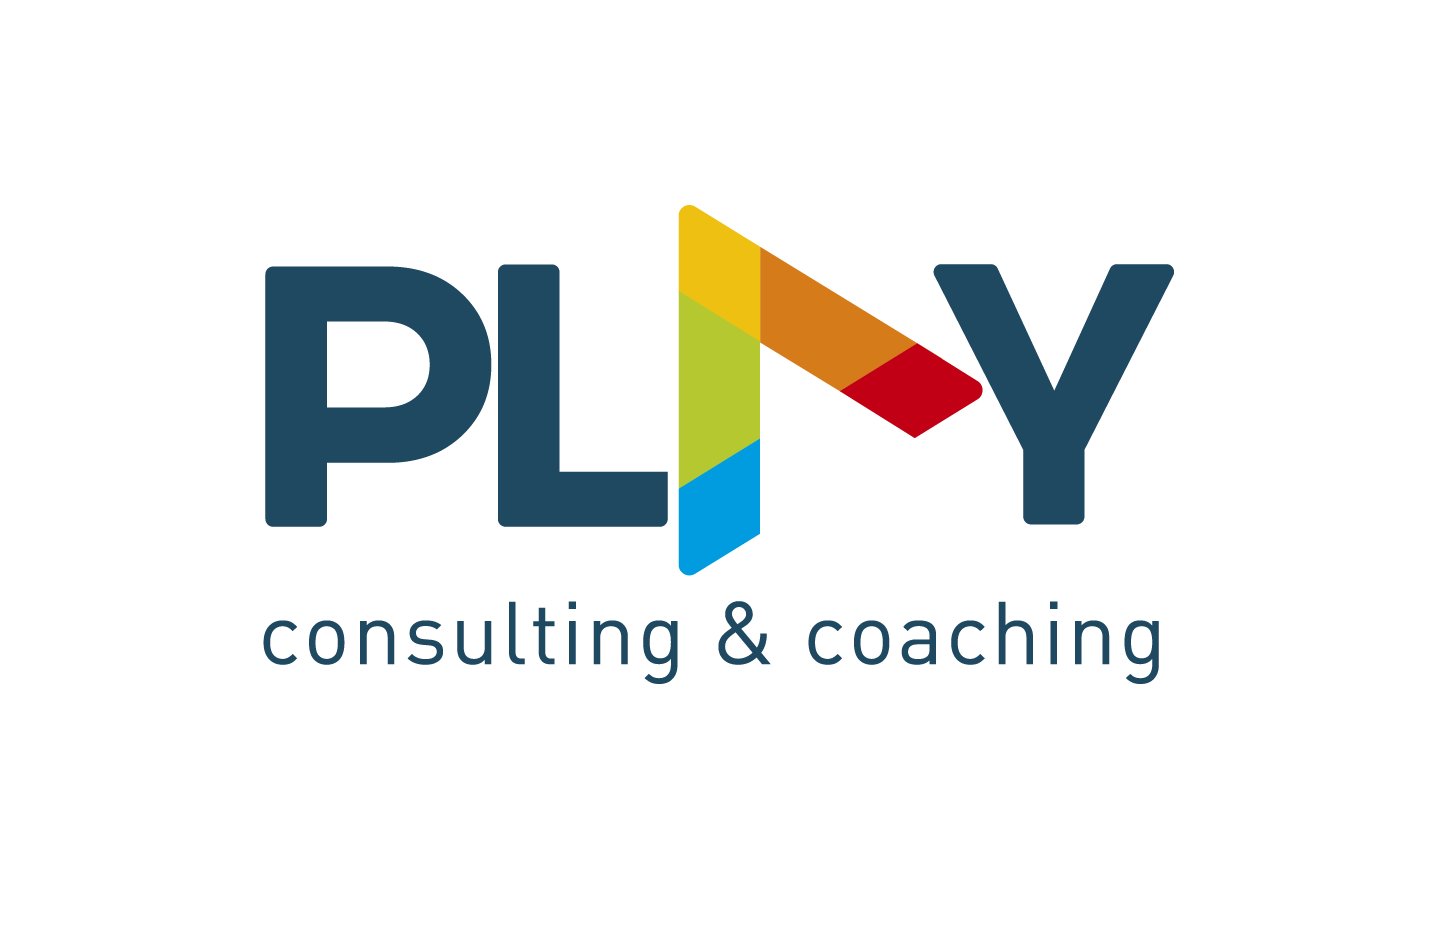 PLAY Consulting & Coaching